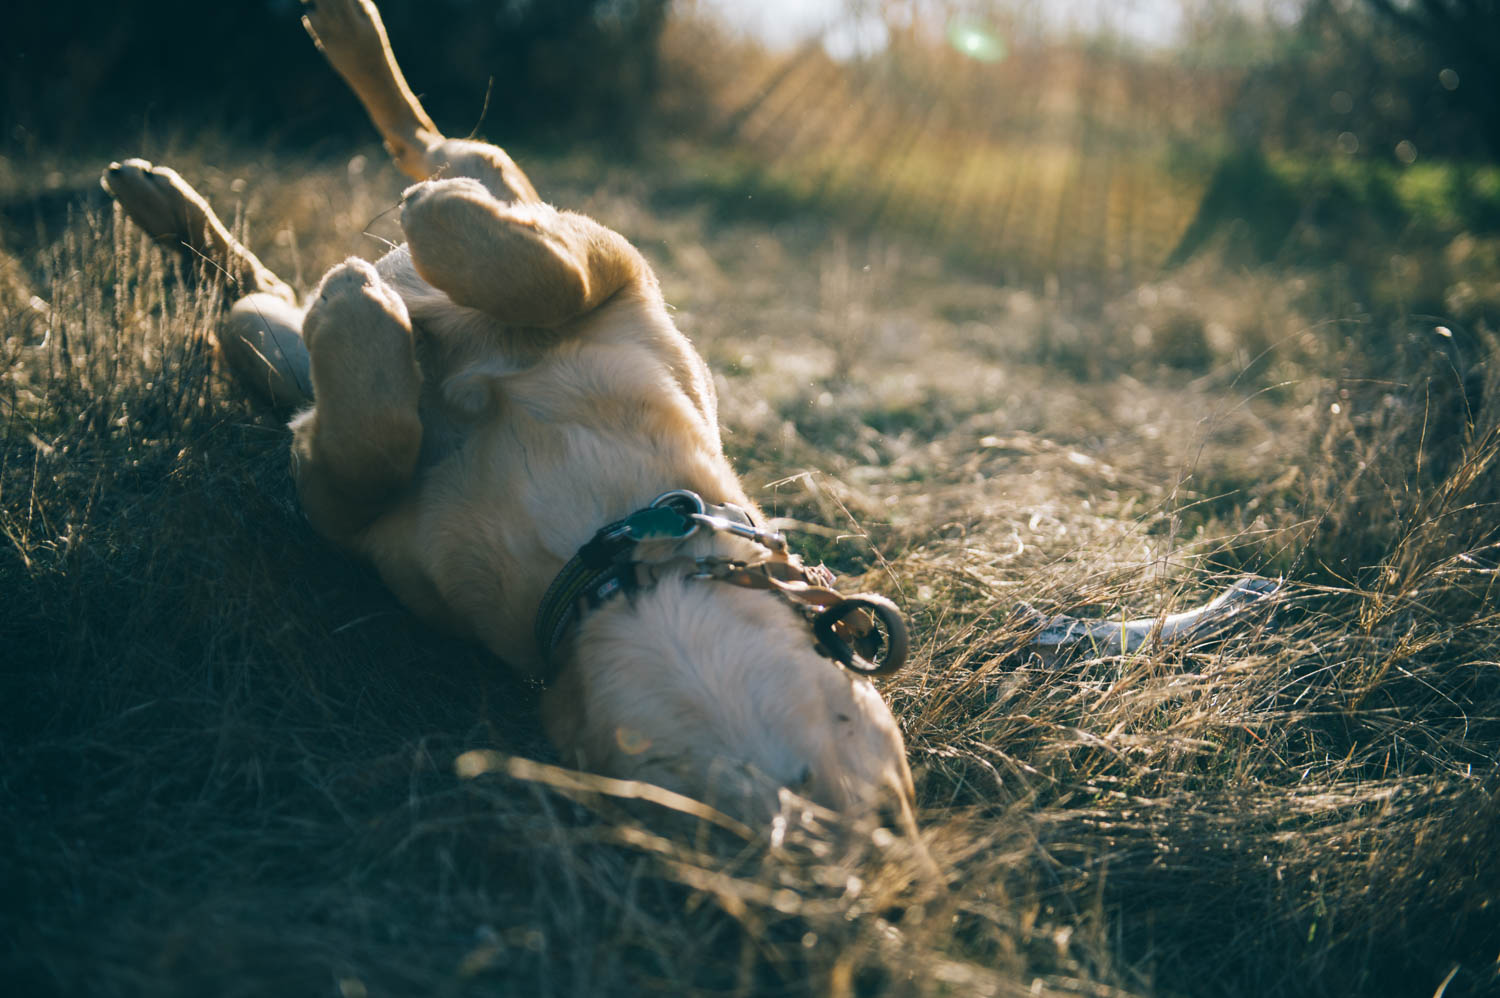 Two of your favorite things: finding bones and rolling in the grass.